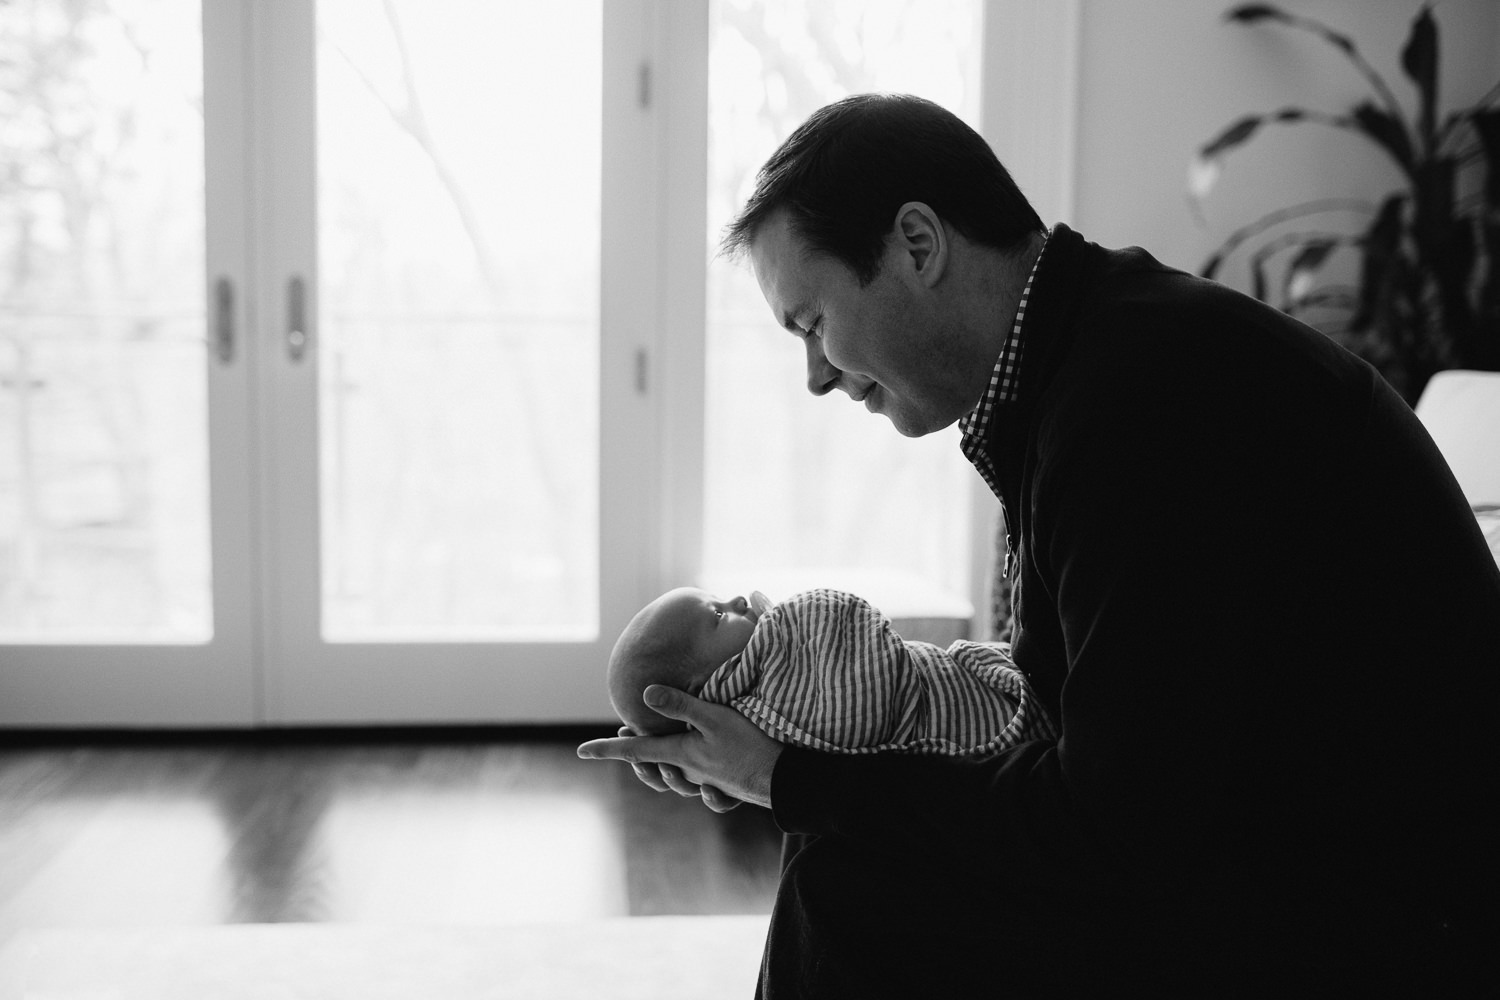 dad leaning forward, holding and looking at 2 week old baby boy - Markham lifestyle photos